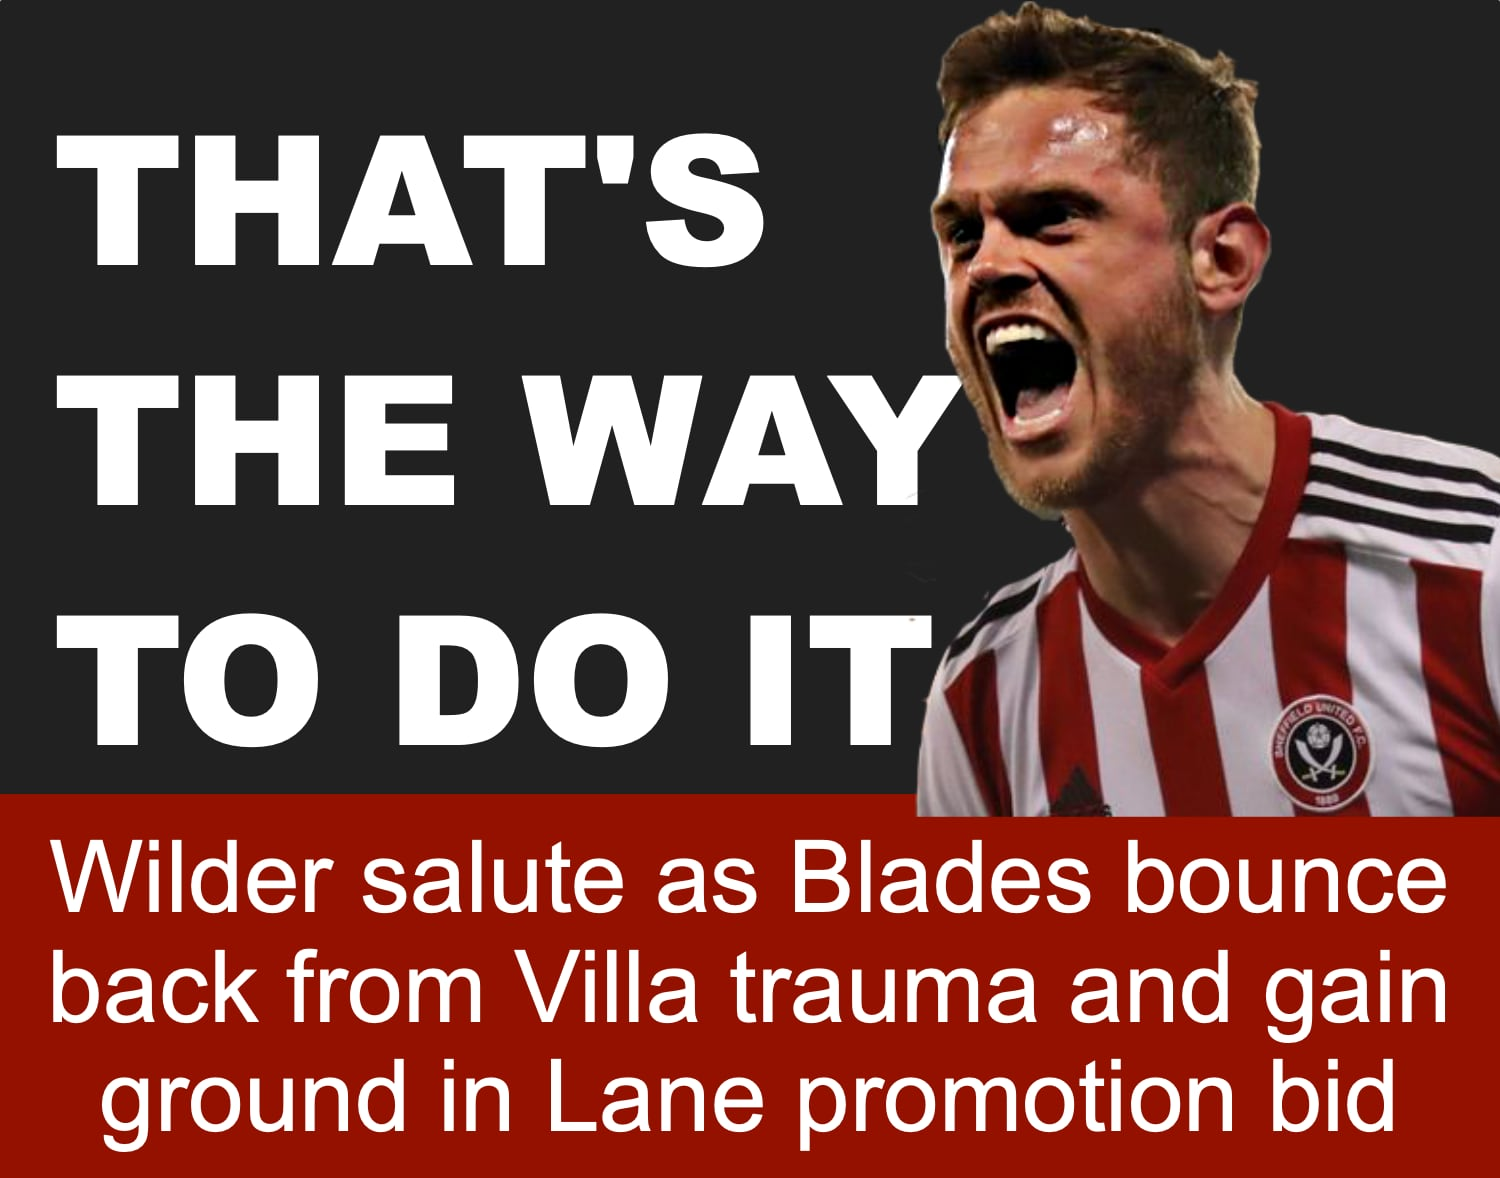 Lesson learned as Sheffield United bounce back after trauma at Villa to gain ground in promotion bid